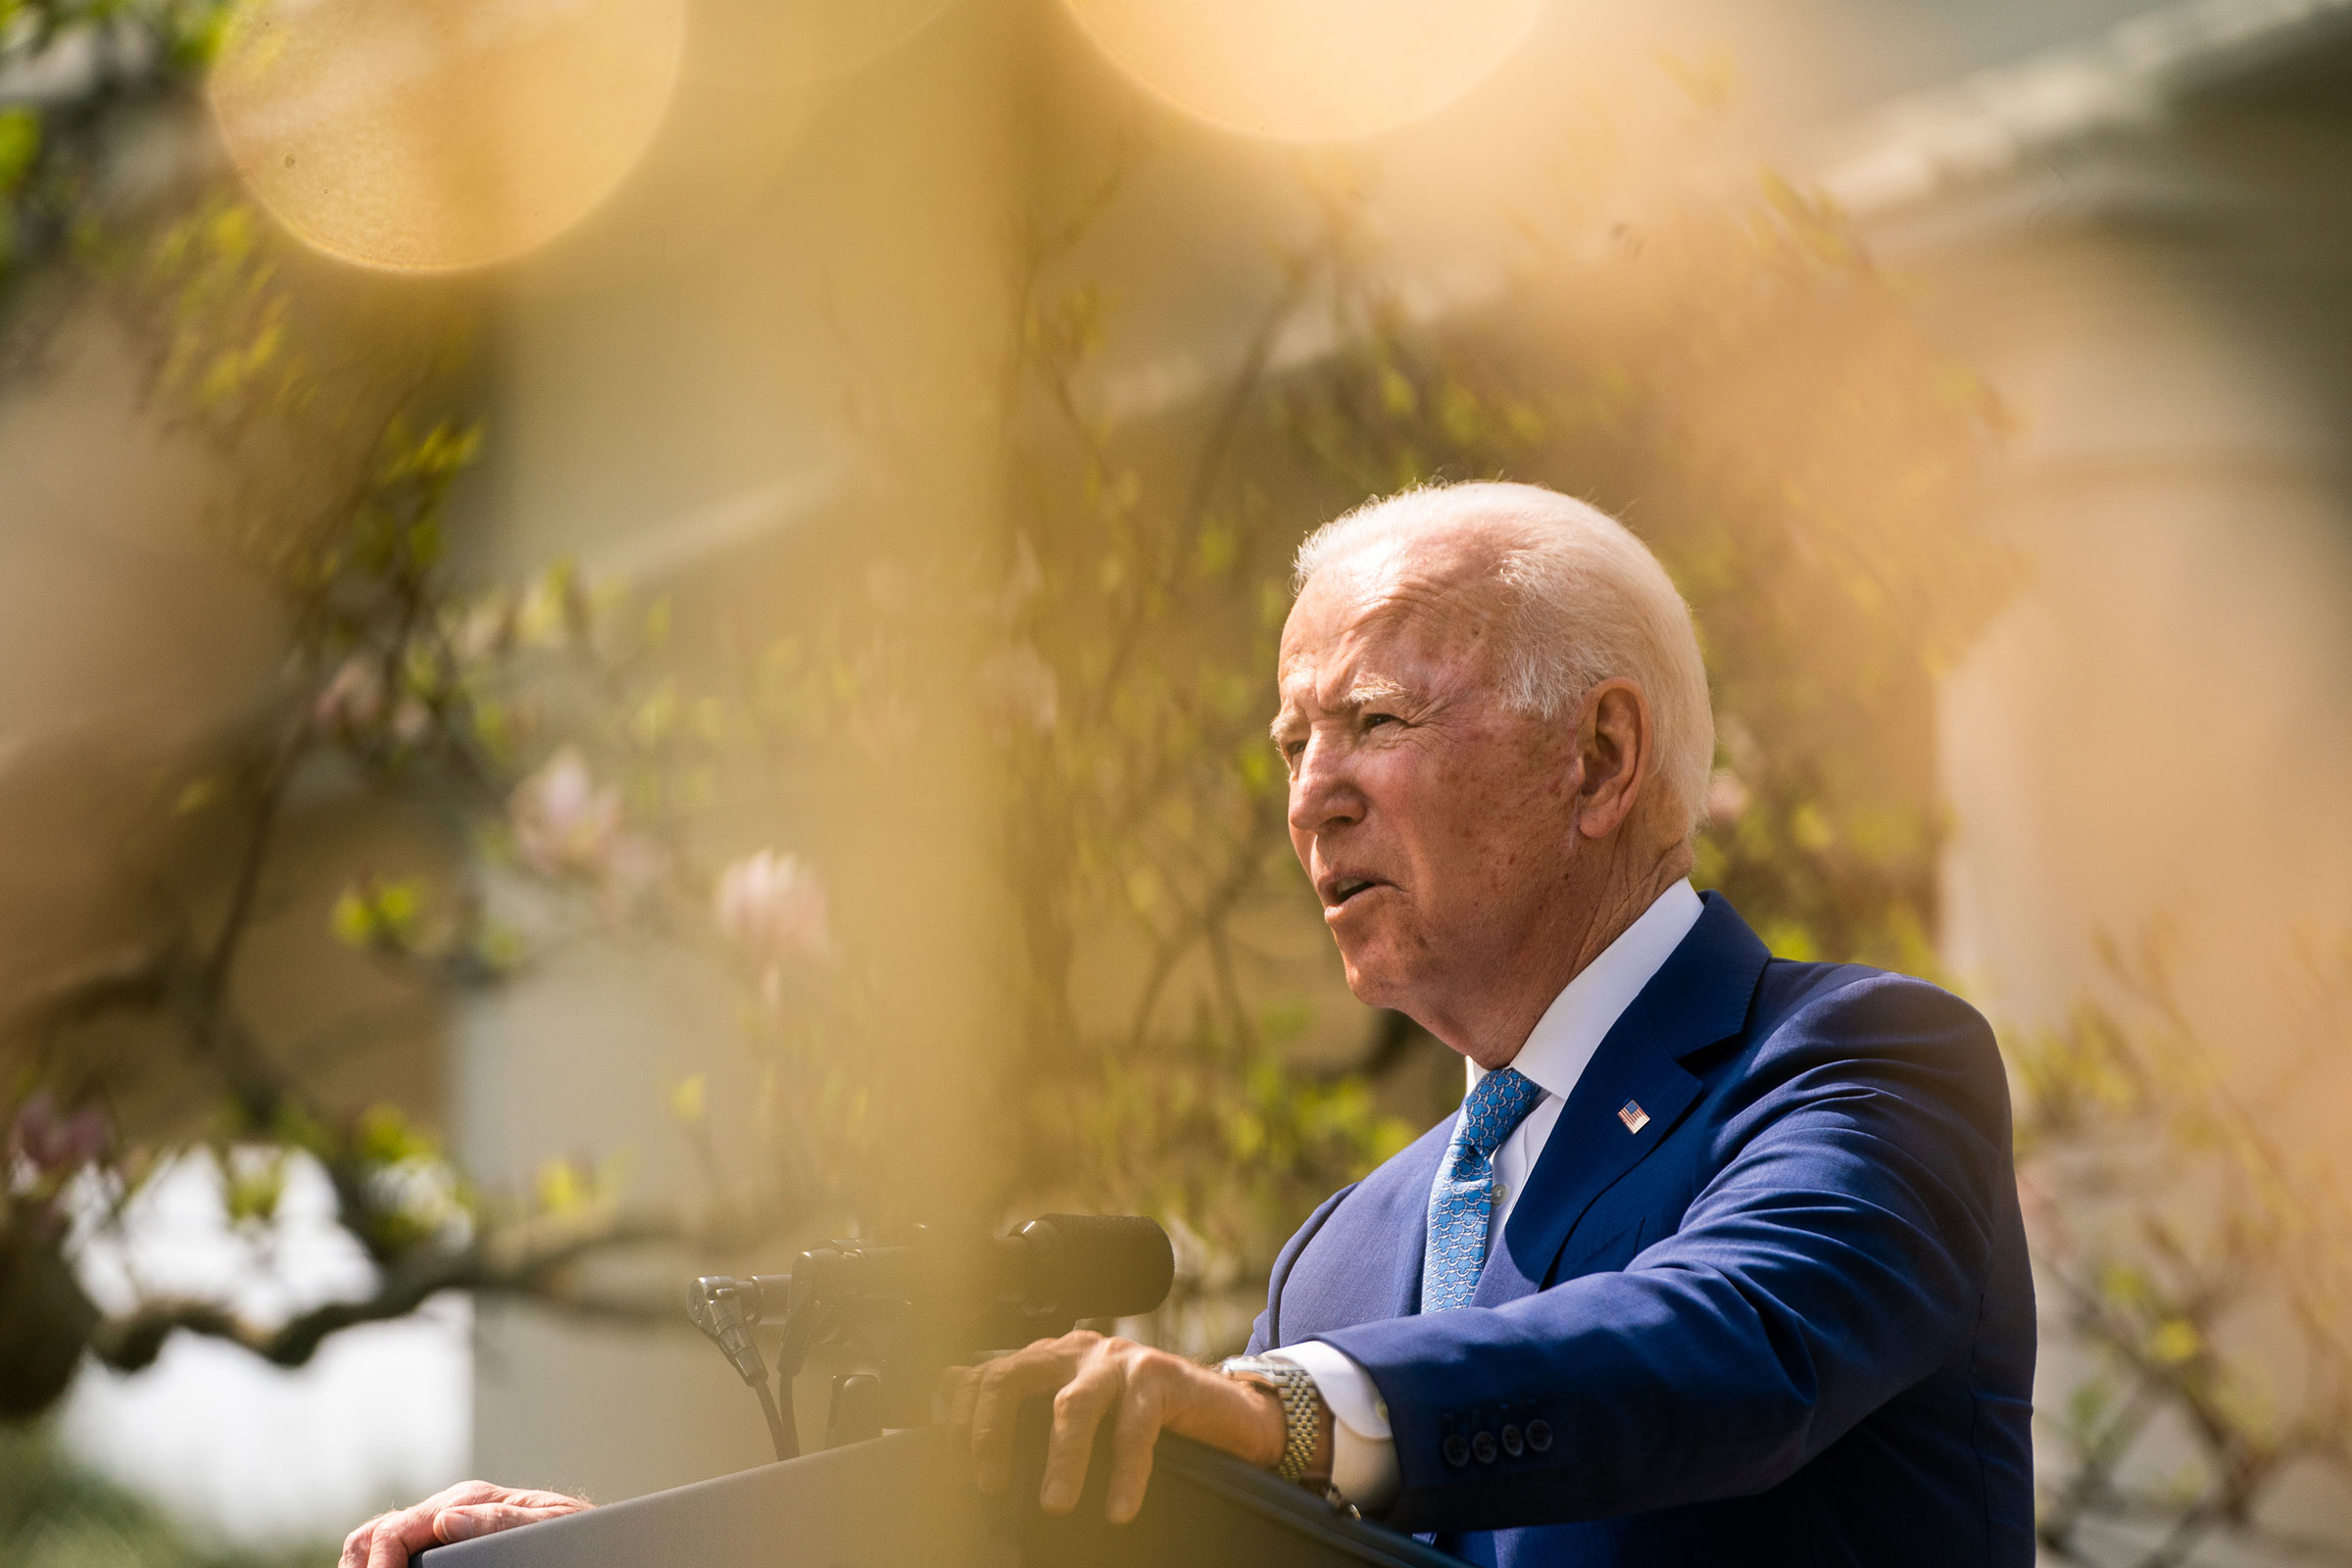 President Joe Biden makes remarks in the Rose Garden at the White House on April 8, 2021.